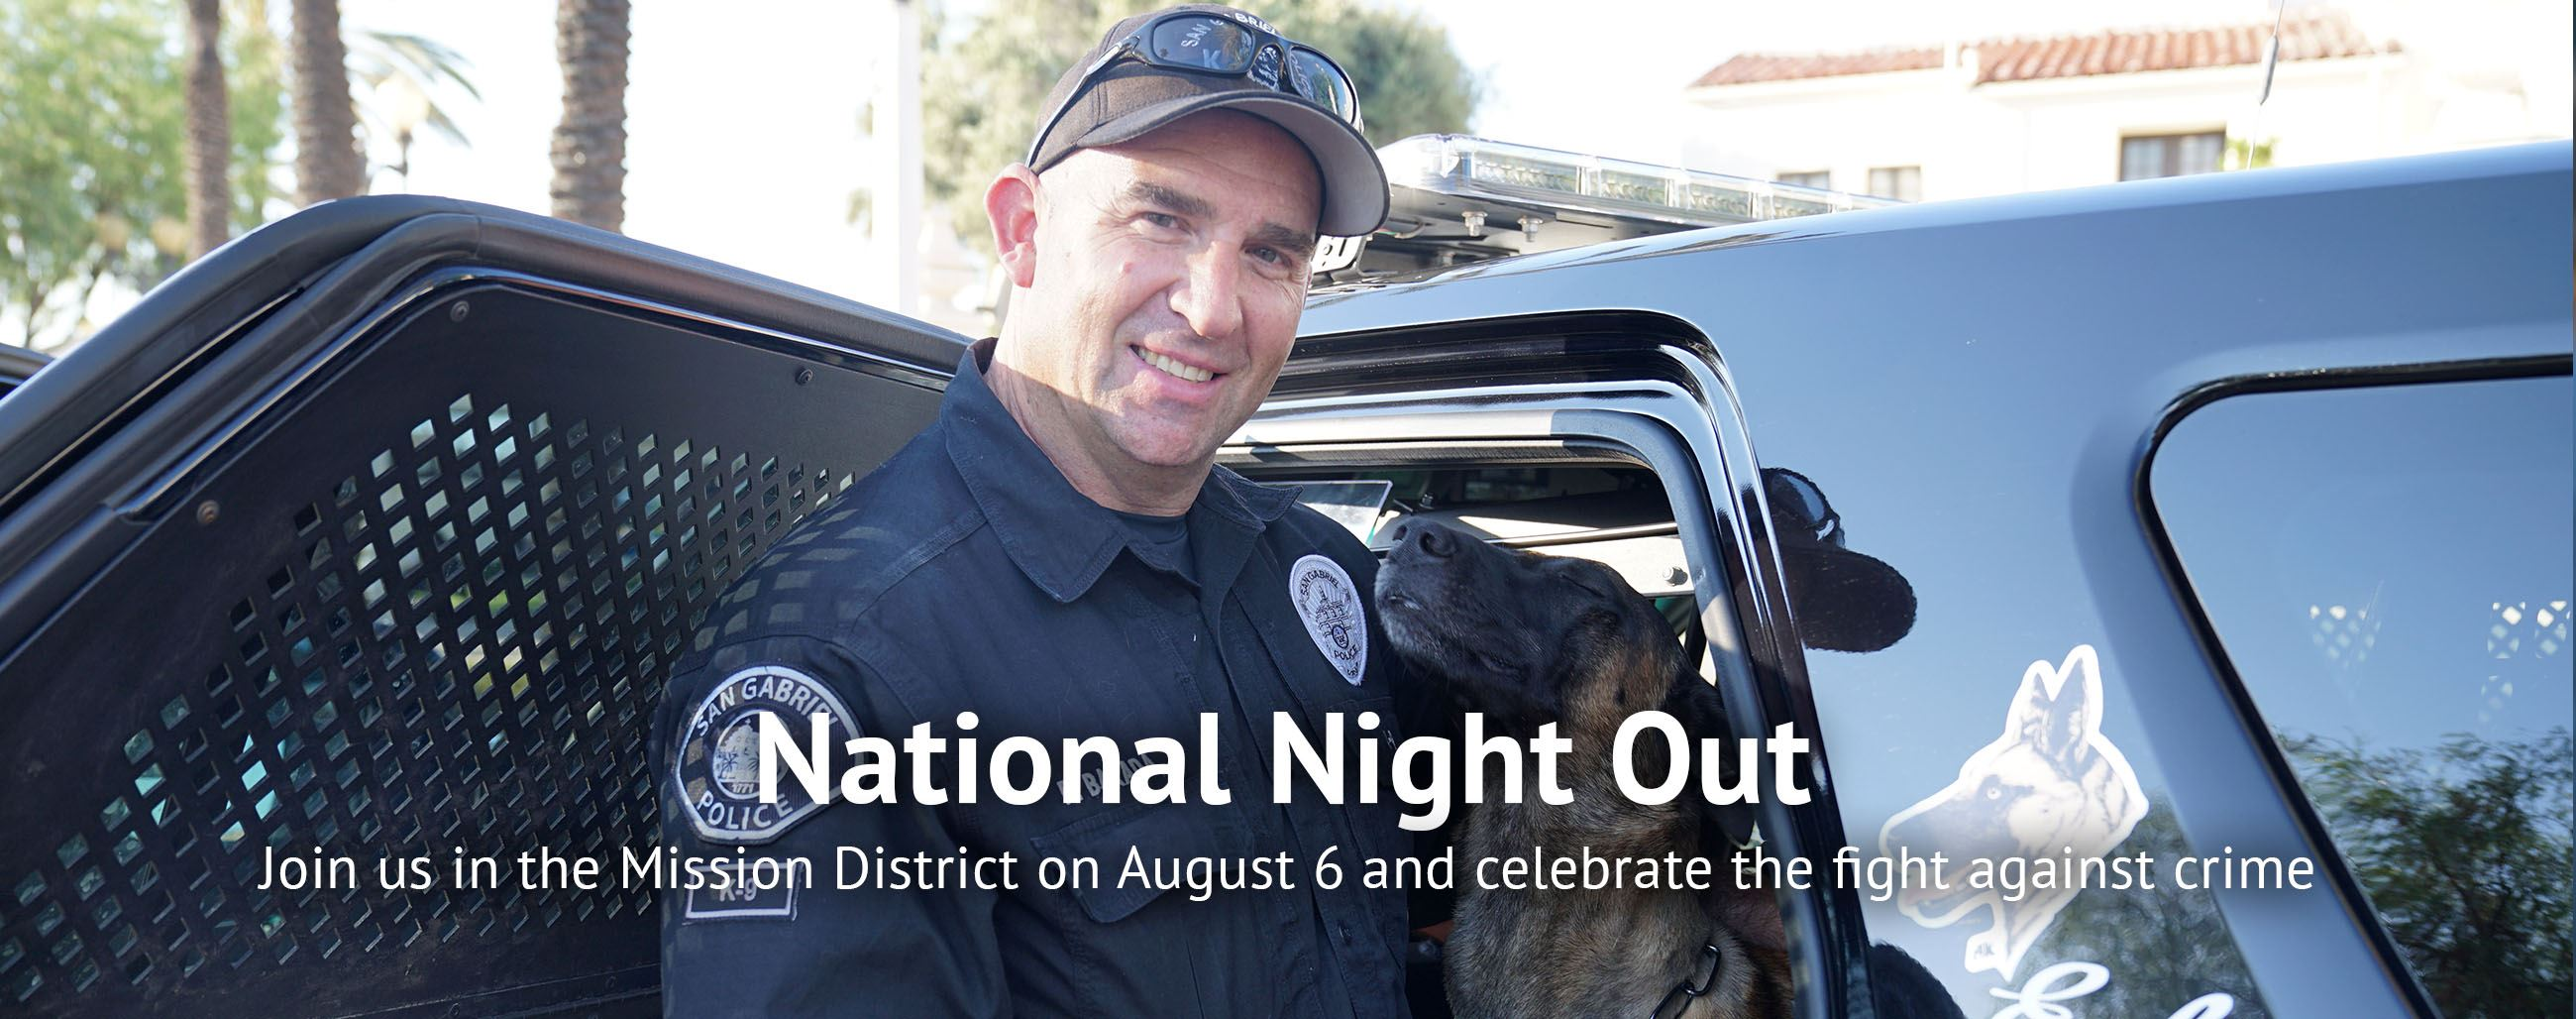 Join us in the Mission District on August 6 and celebrate the fight against crime